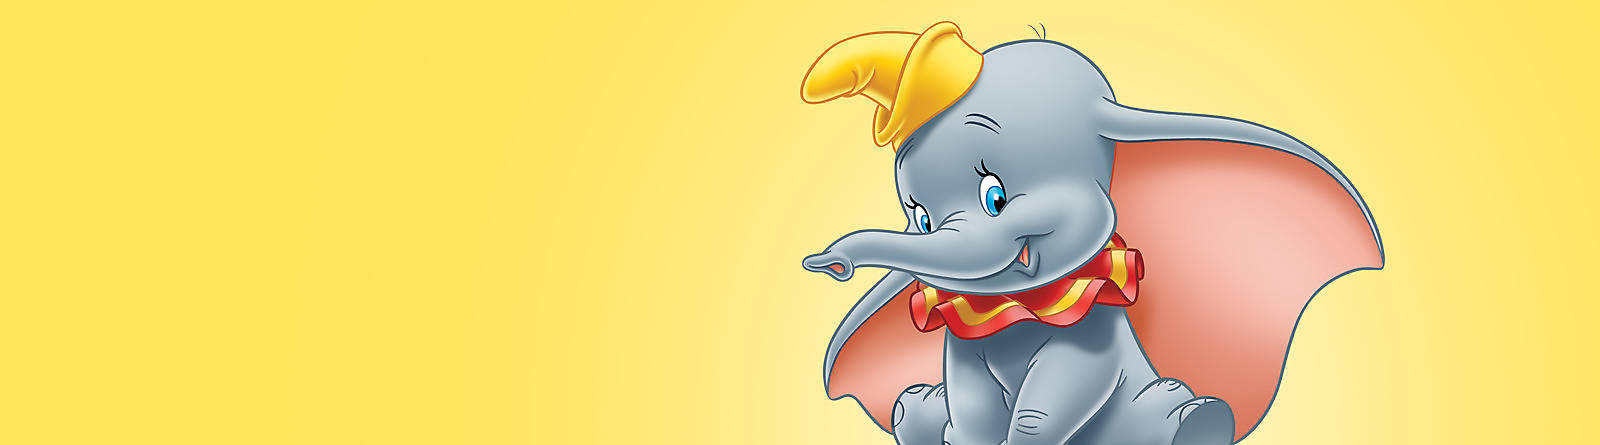 Dumbo See an elephant fly with our range of Dumbo soft toys, baby gifts and collectibles